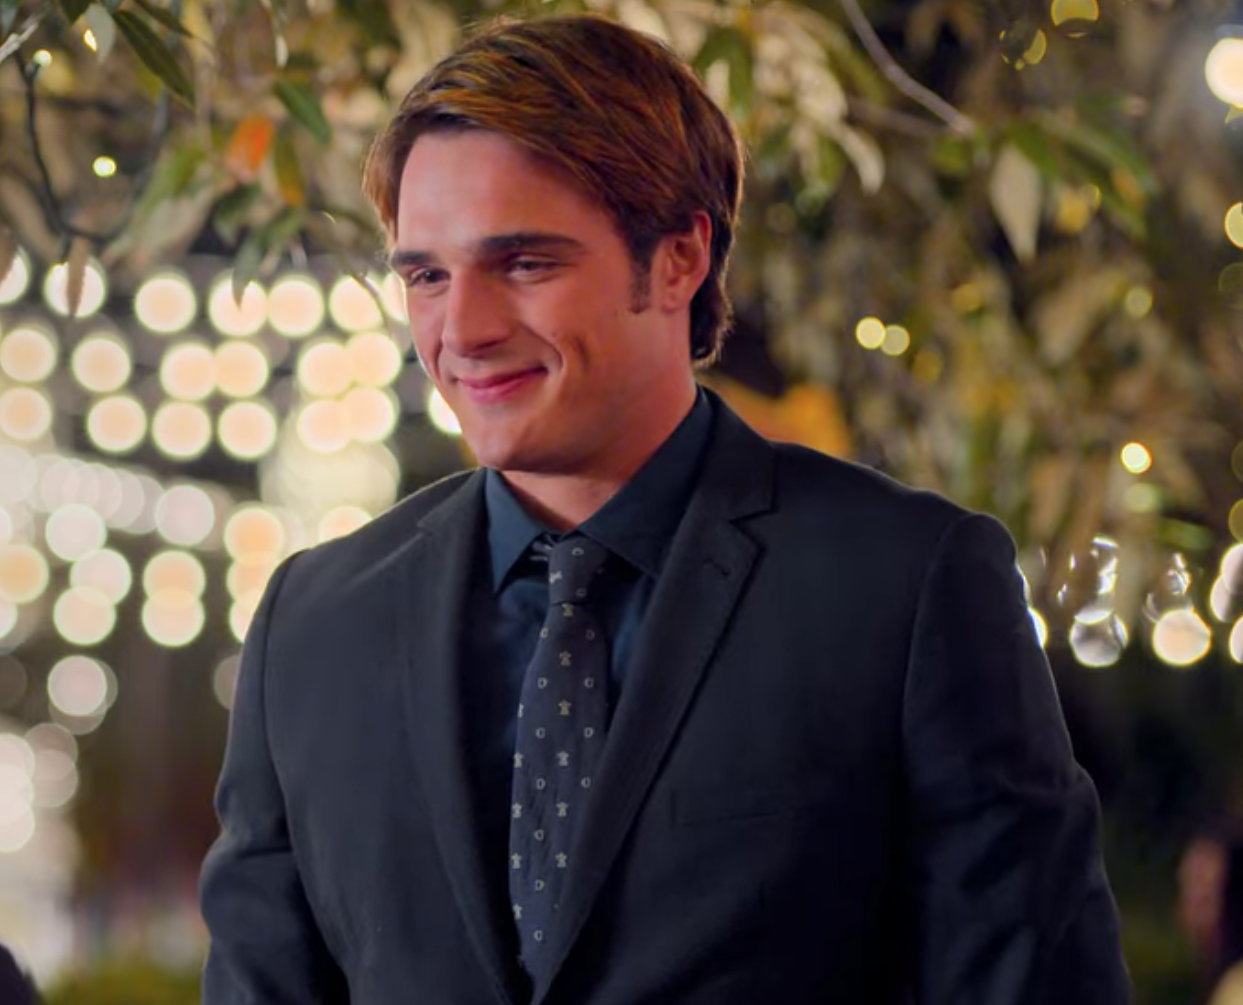 A close-up of Noah as he wears a dark suit and matching tie